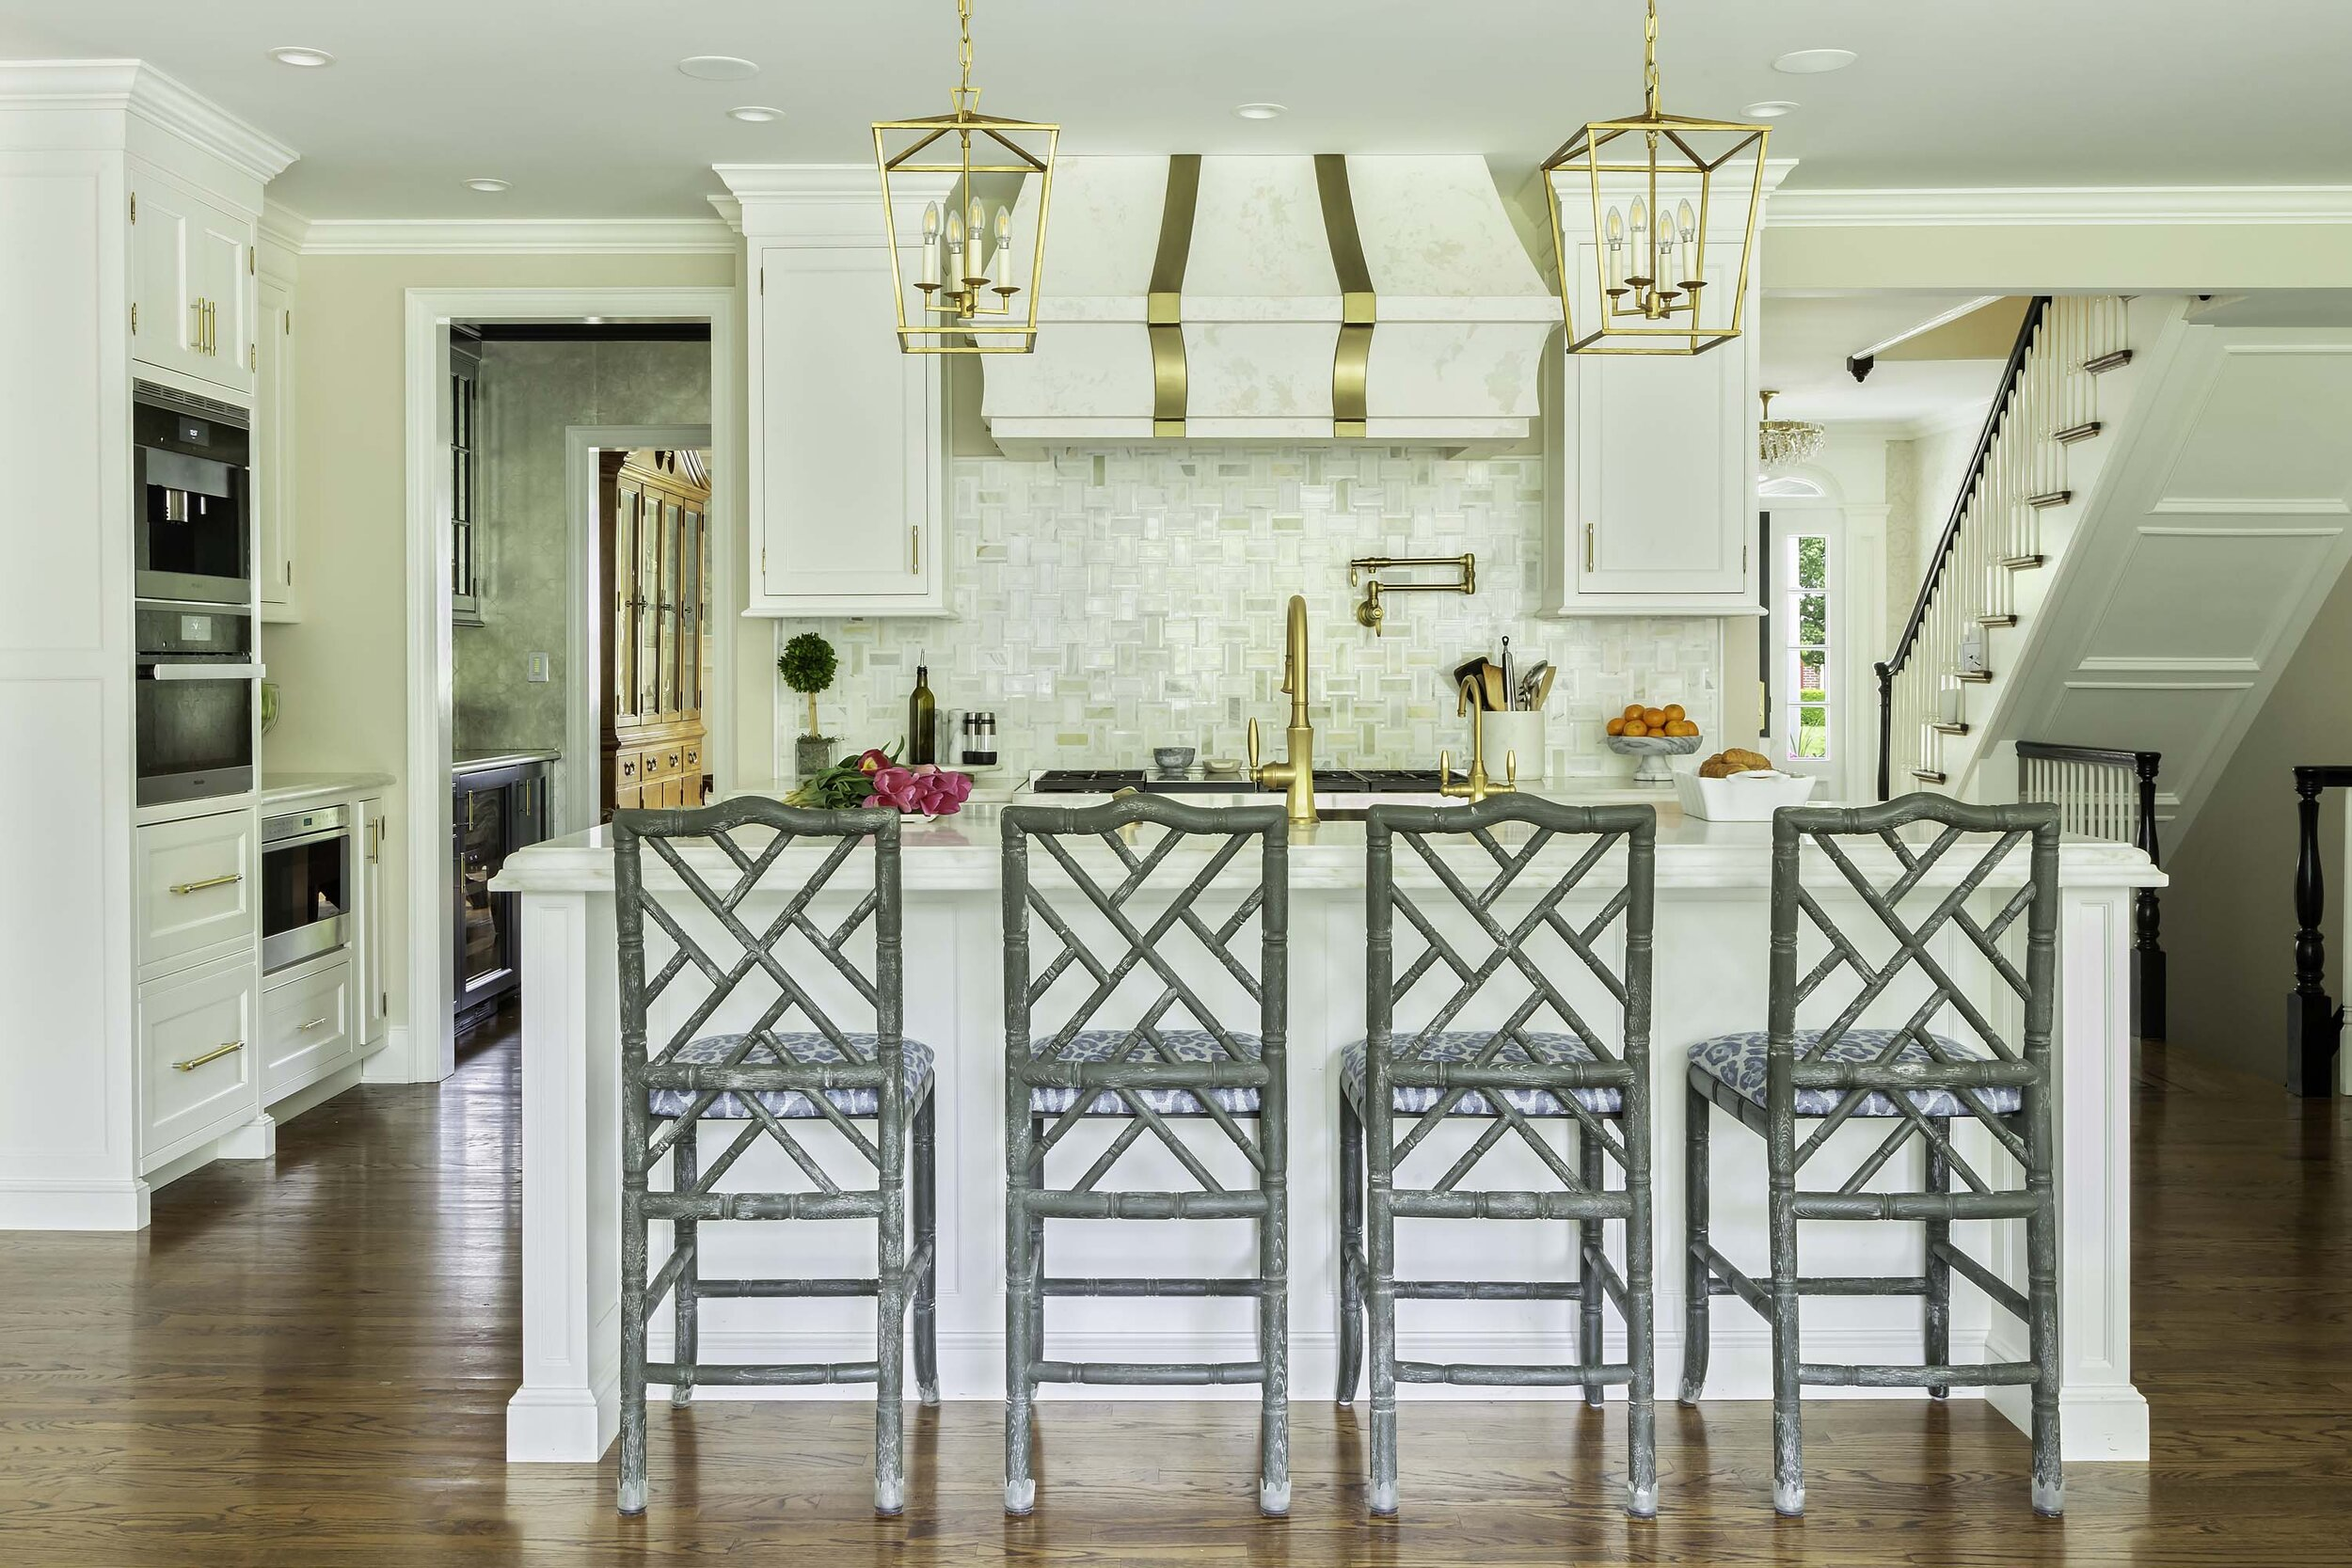 brass inserts and accessories add accents in this transitional white kitchen